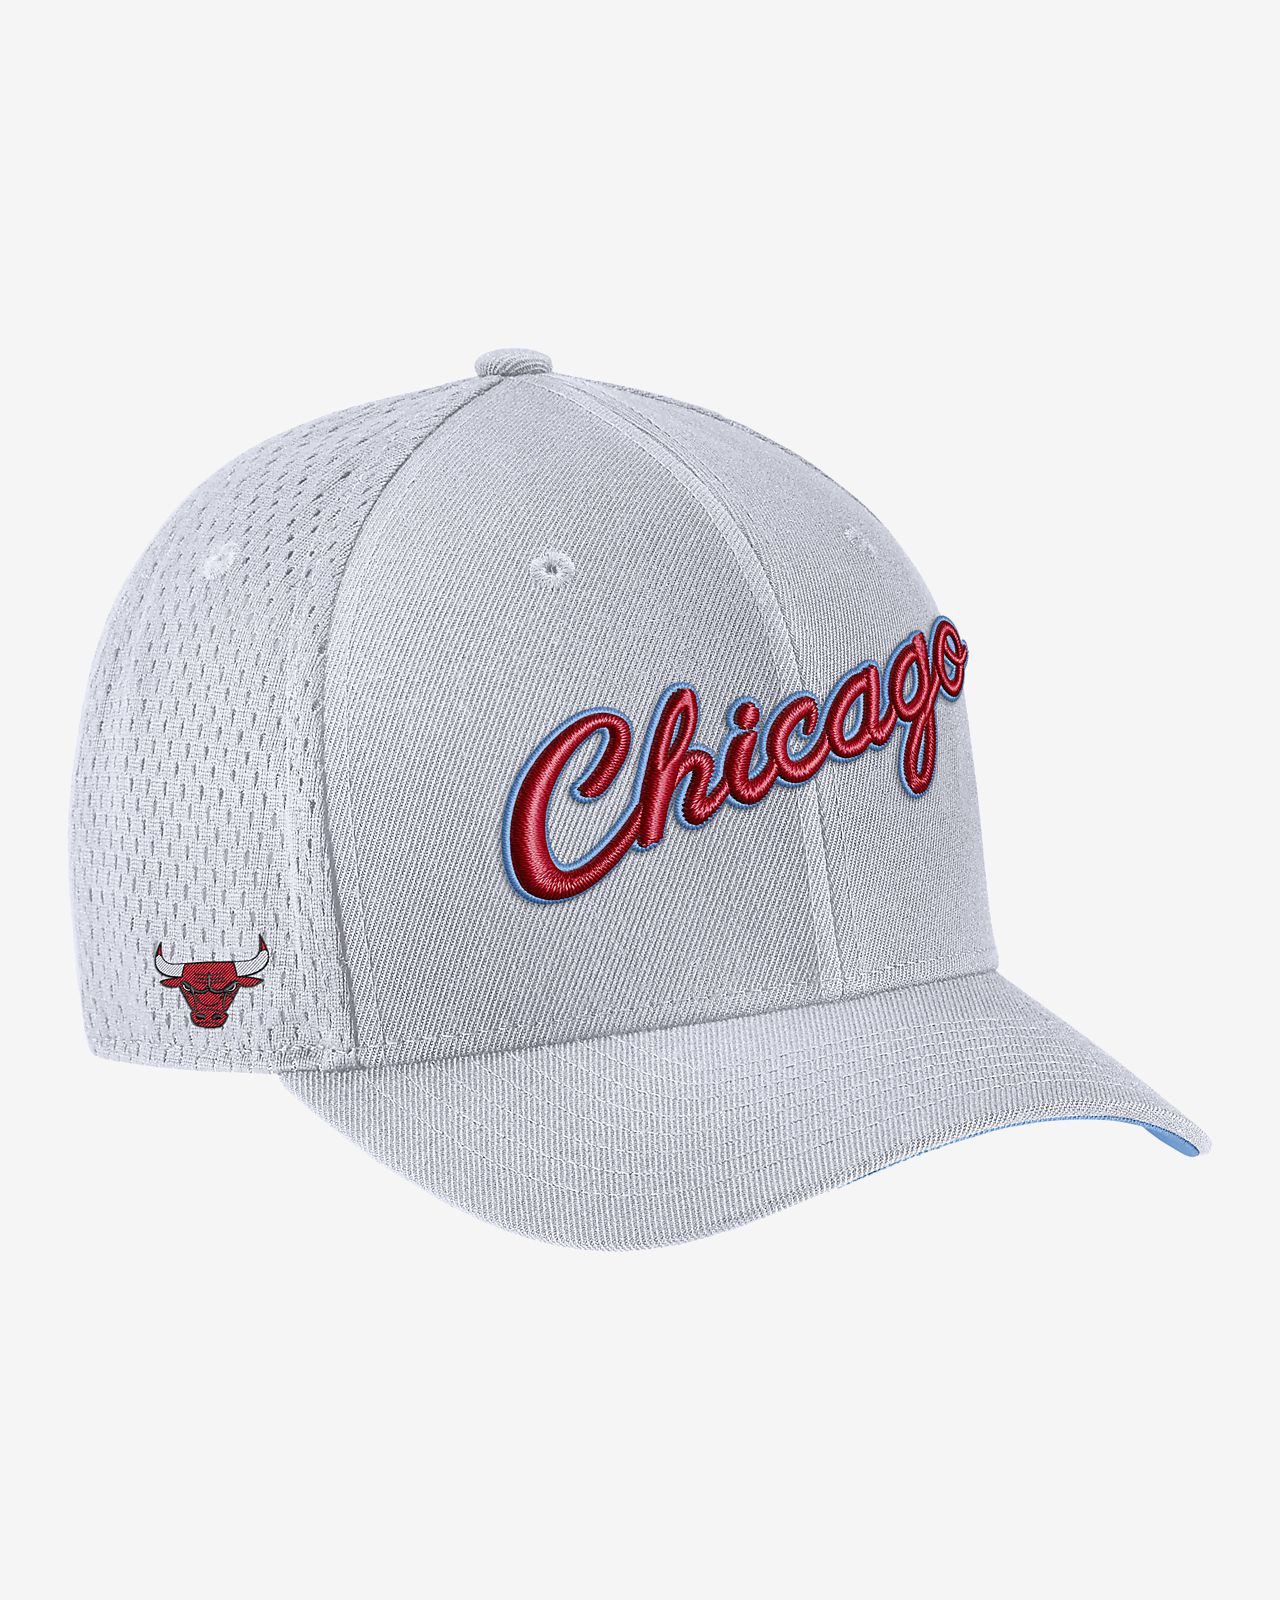 b03f6ca1c457 ... coupon code for chicago bulls city edition nike classic99 unisex nba hat  c2680 a86c3